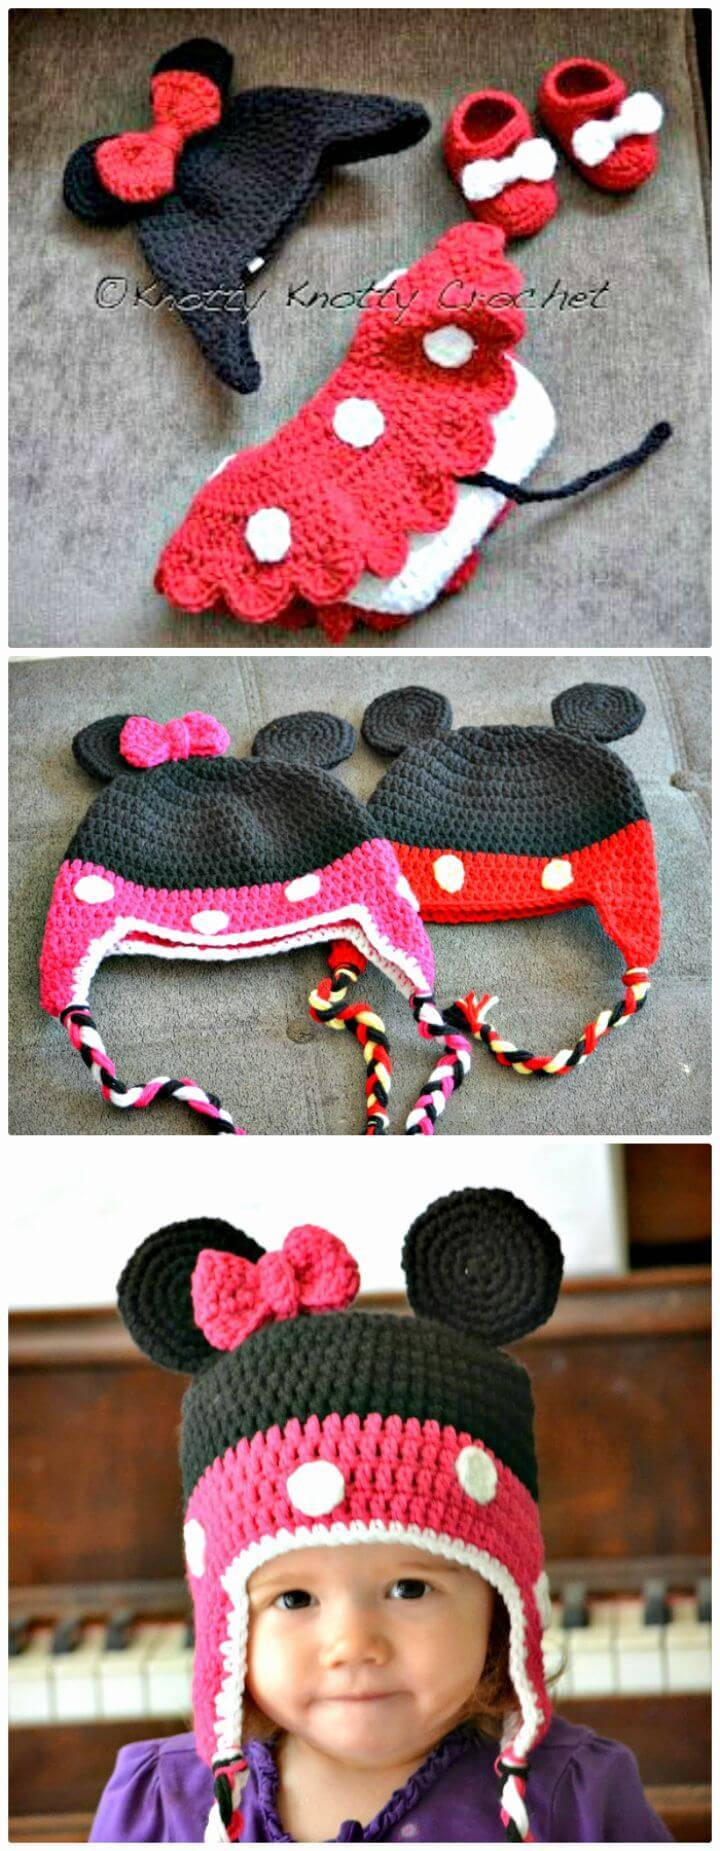 Crochet Mickey Mouse Patterns, Hat, Amigurumi - DIY & Crafts